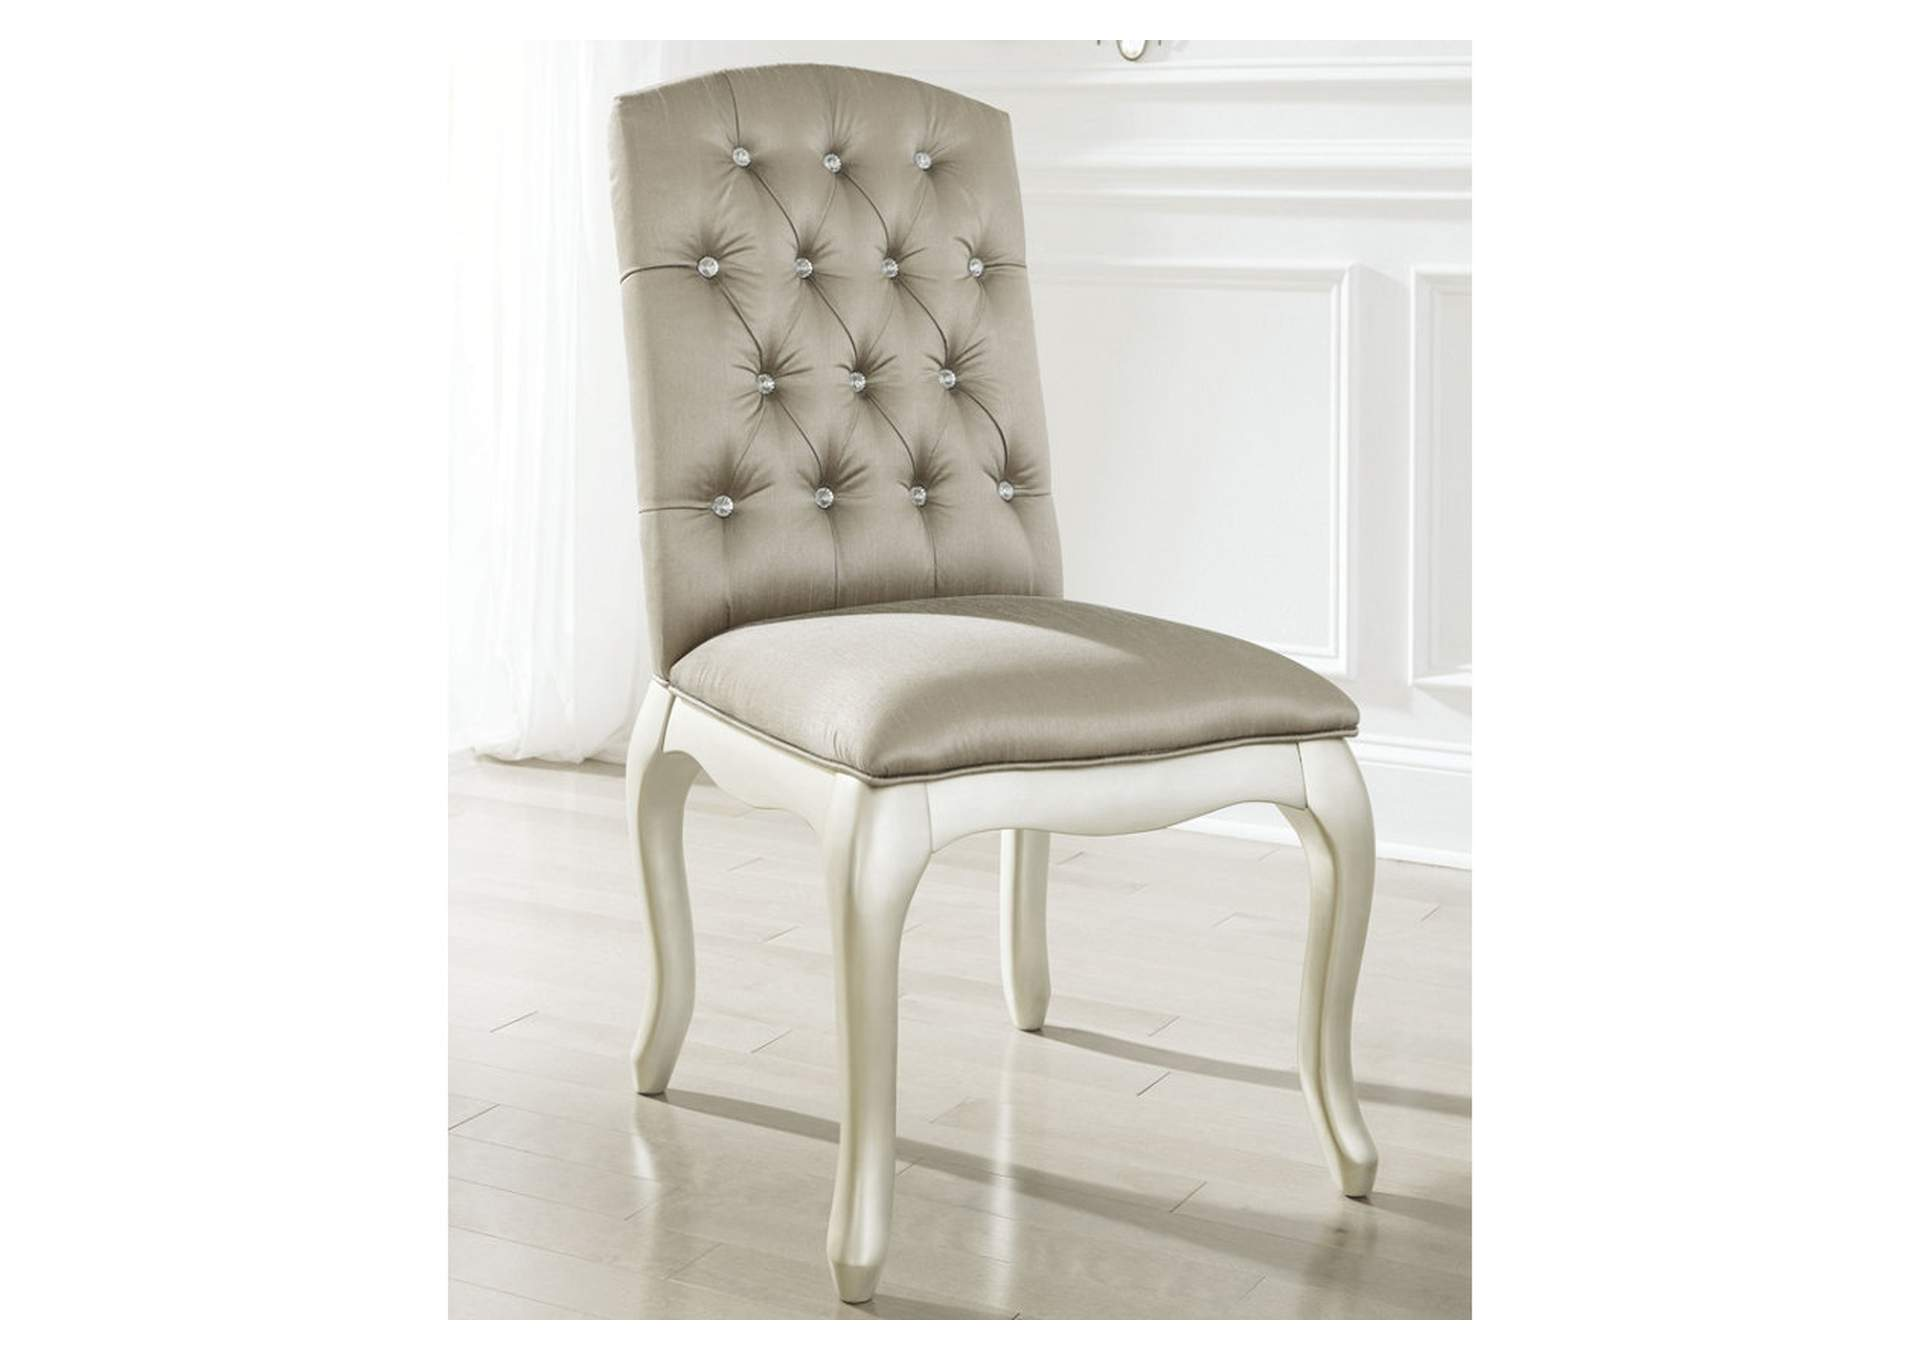 Cassimore Pearl Silver Upholstered Chair,48 Hour Quick Ship